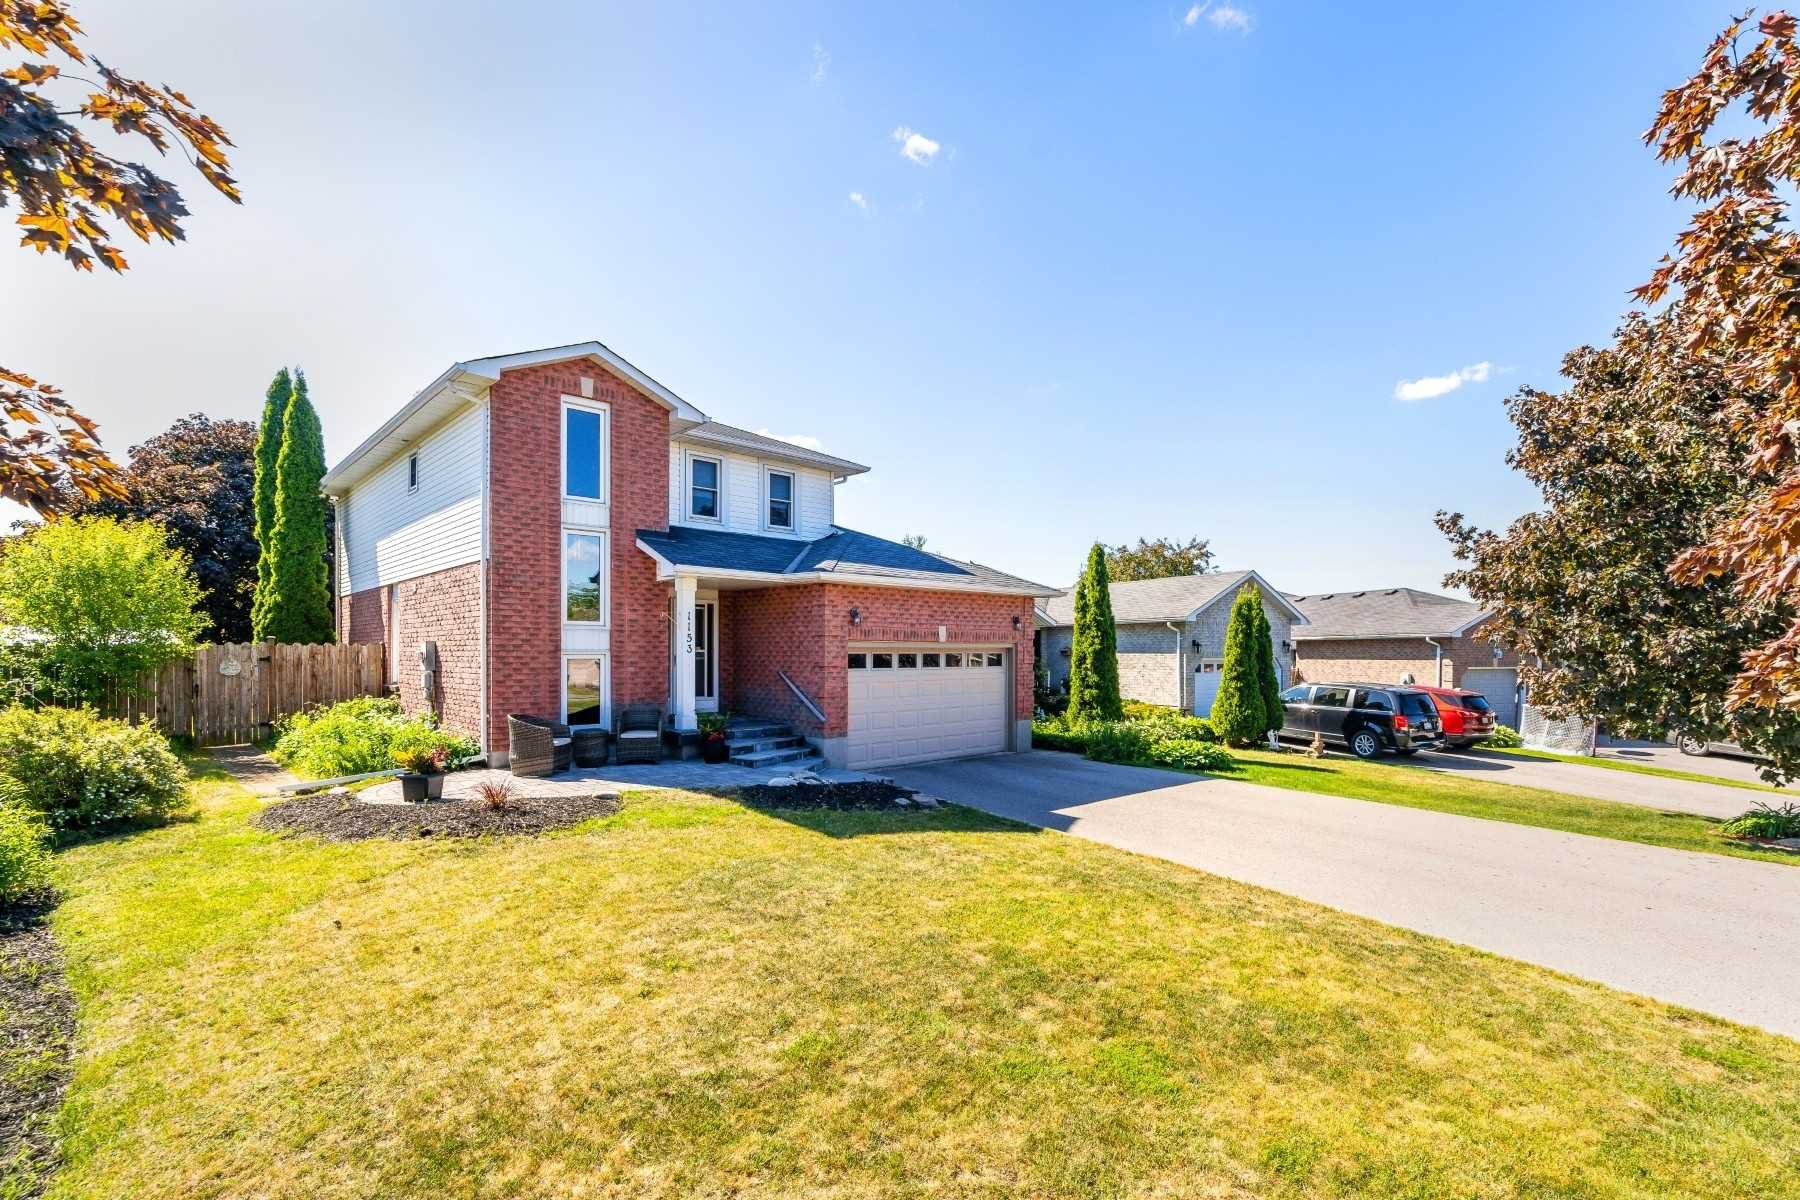 Photo 2: Photos: 1153 Snowberry Court in Oshawa: Pinecrest House (2-Storey) for sale : MLS®# E4794796